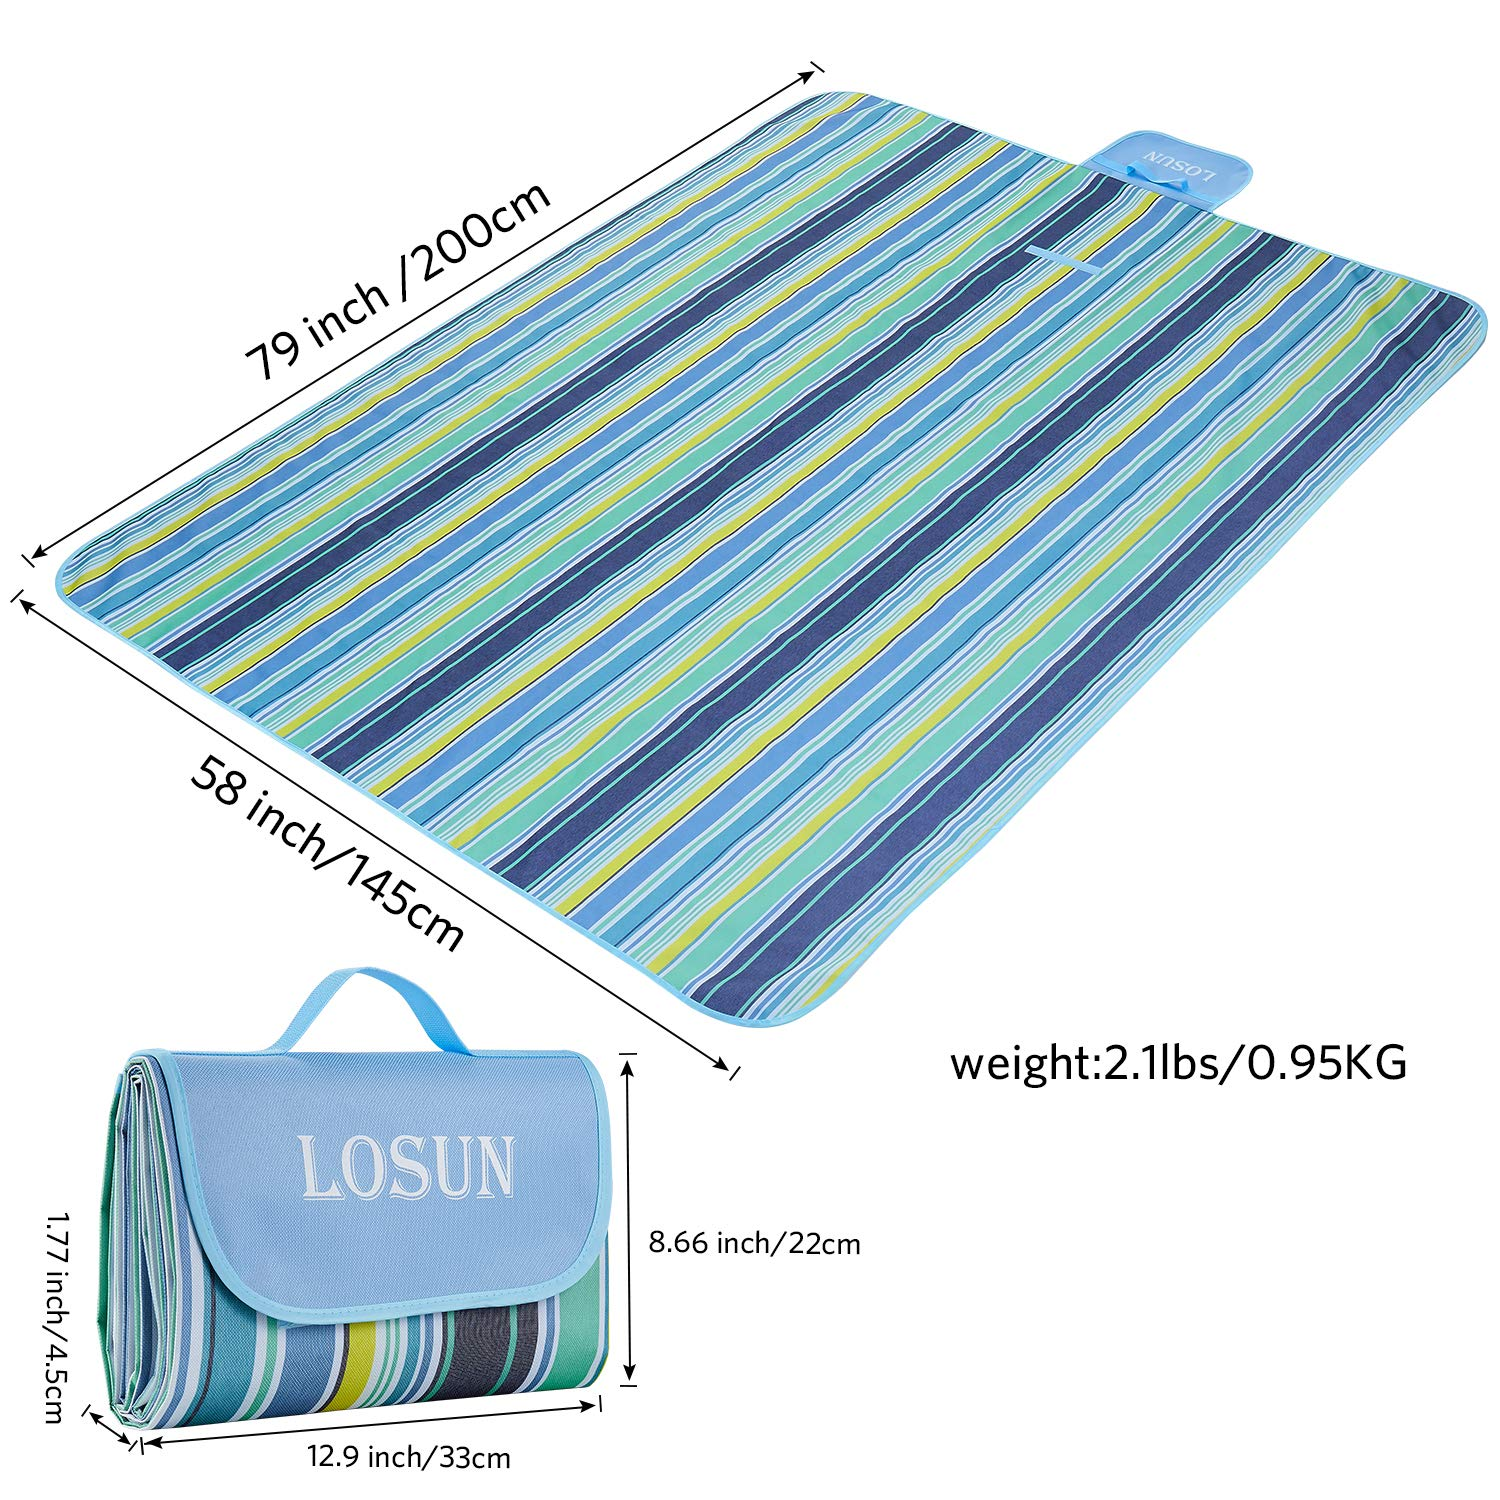 79x58 losun Extra Large Picnic Blanket /& Outdoor Blanket Waterproof Sandproof Extra Portable Beach Handy Mat with Strap for Home,Camping,Hiking Beach,Park Picnic